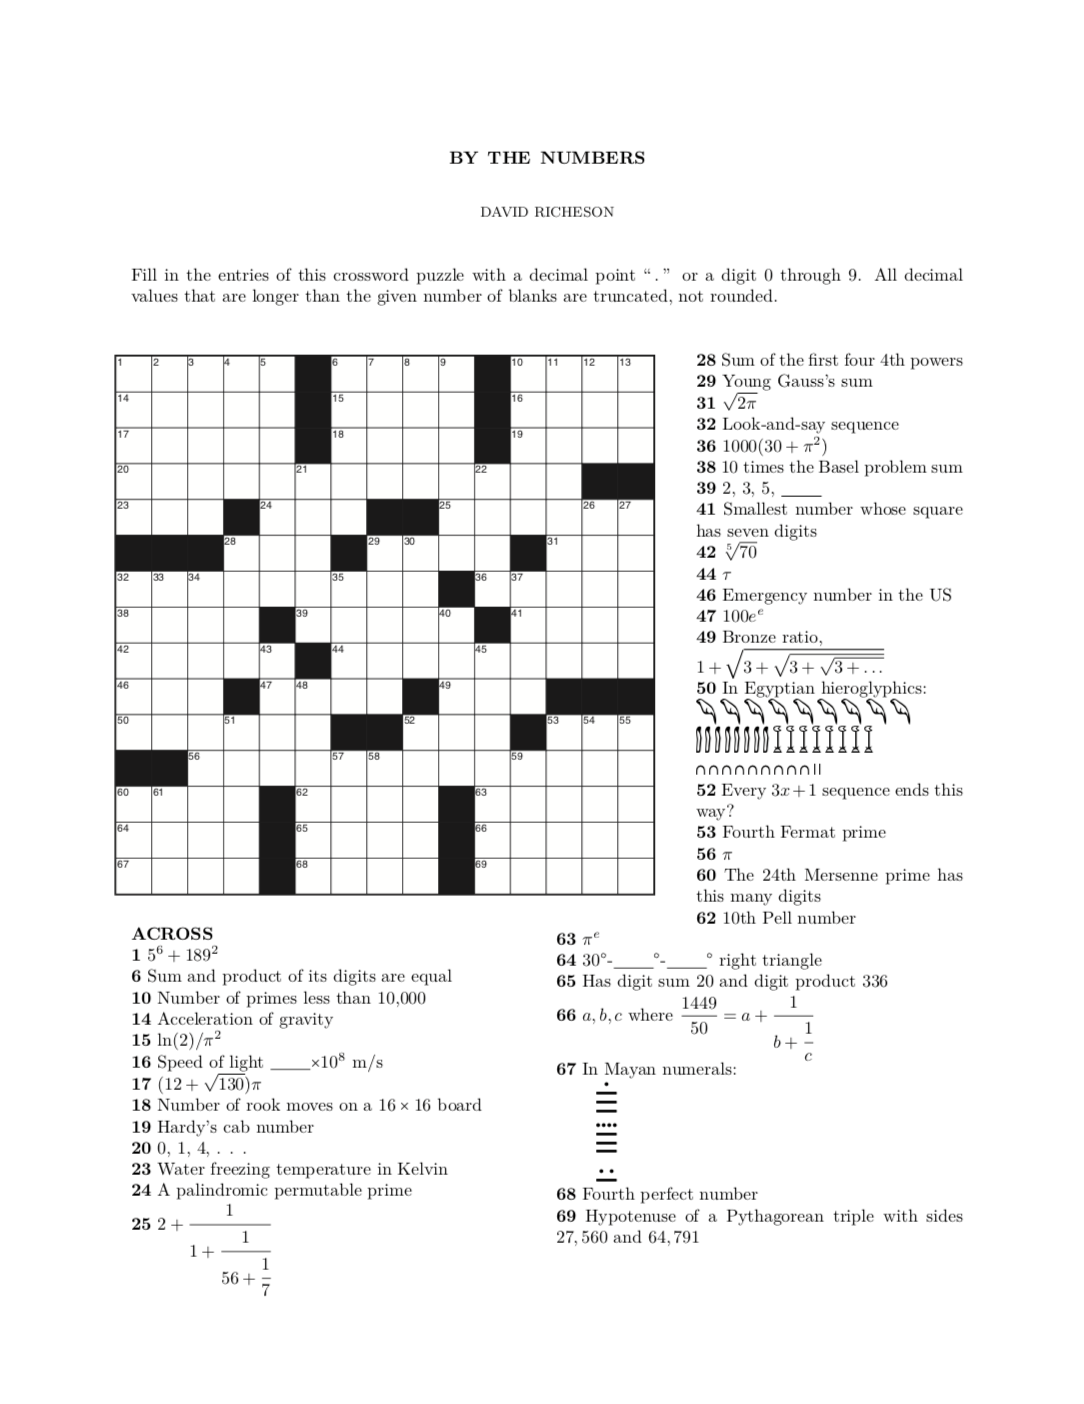 A Numerical Crossword Puzzle David Richeson Division By